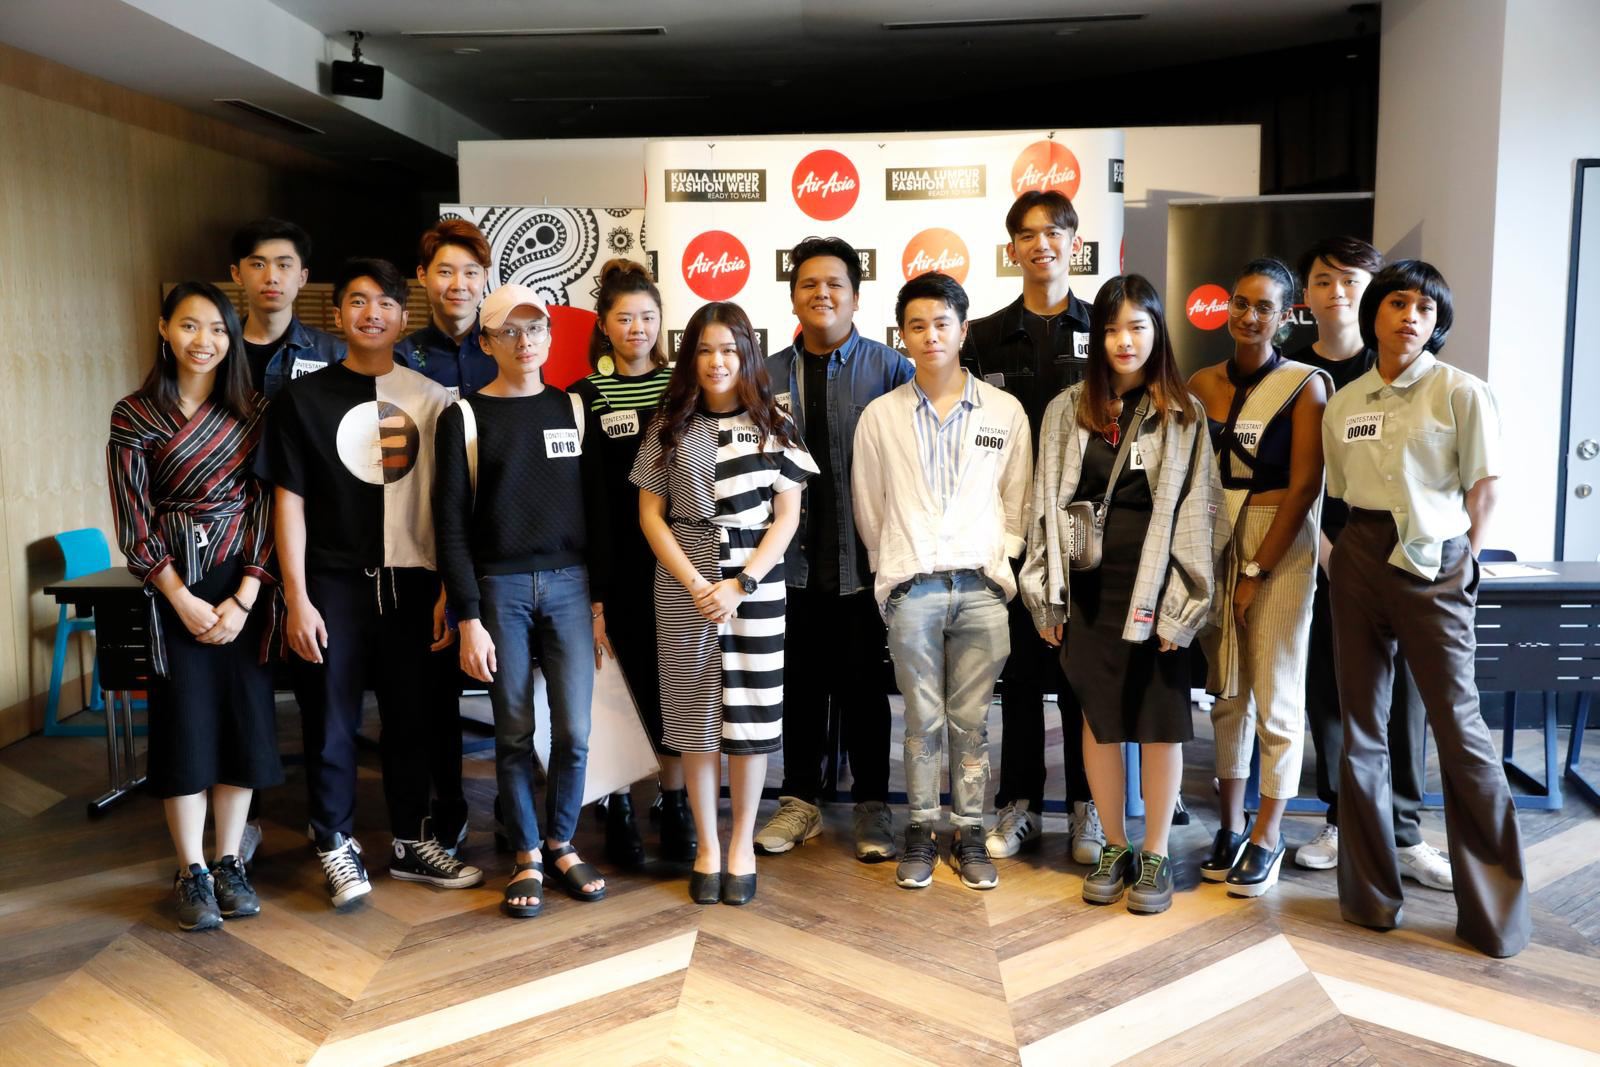 LEFt to RIGHT: Wong Jheng Mun, Lau Zhong Xun, Raydian Chew, Alex Soo CHin Tong, Faizal Yuen, Kelly Lee Kah Shin, Daphne Lim Wen Sin, AHmad Masyadi Hussaini Bin Che Mansor, Kristopher Toon, Tan Win Shean, Gan Jing Xuan, Belinda Ann, David Han and Lurazah Raunna.